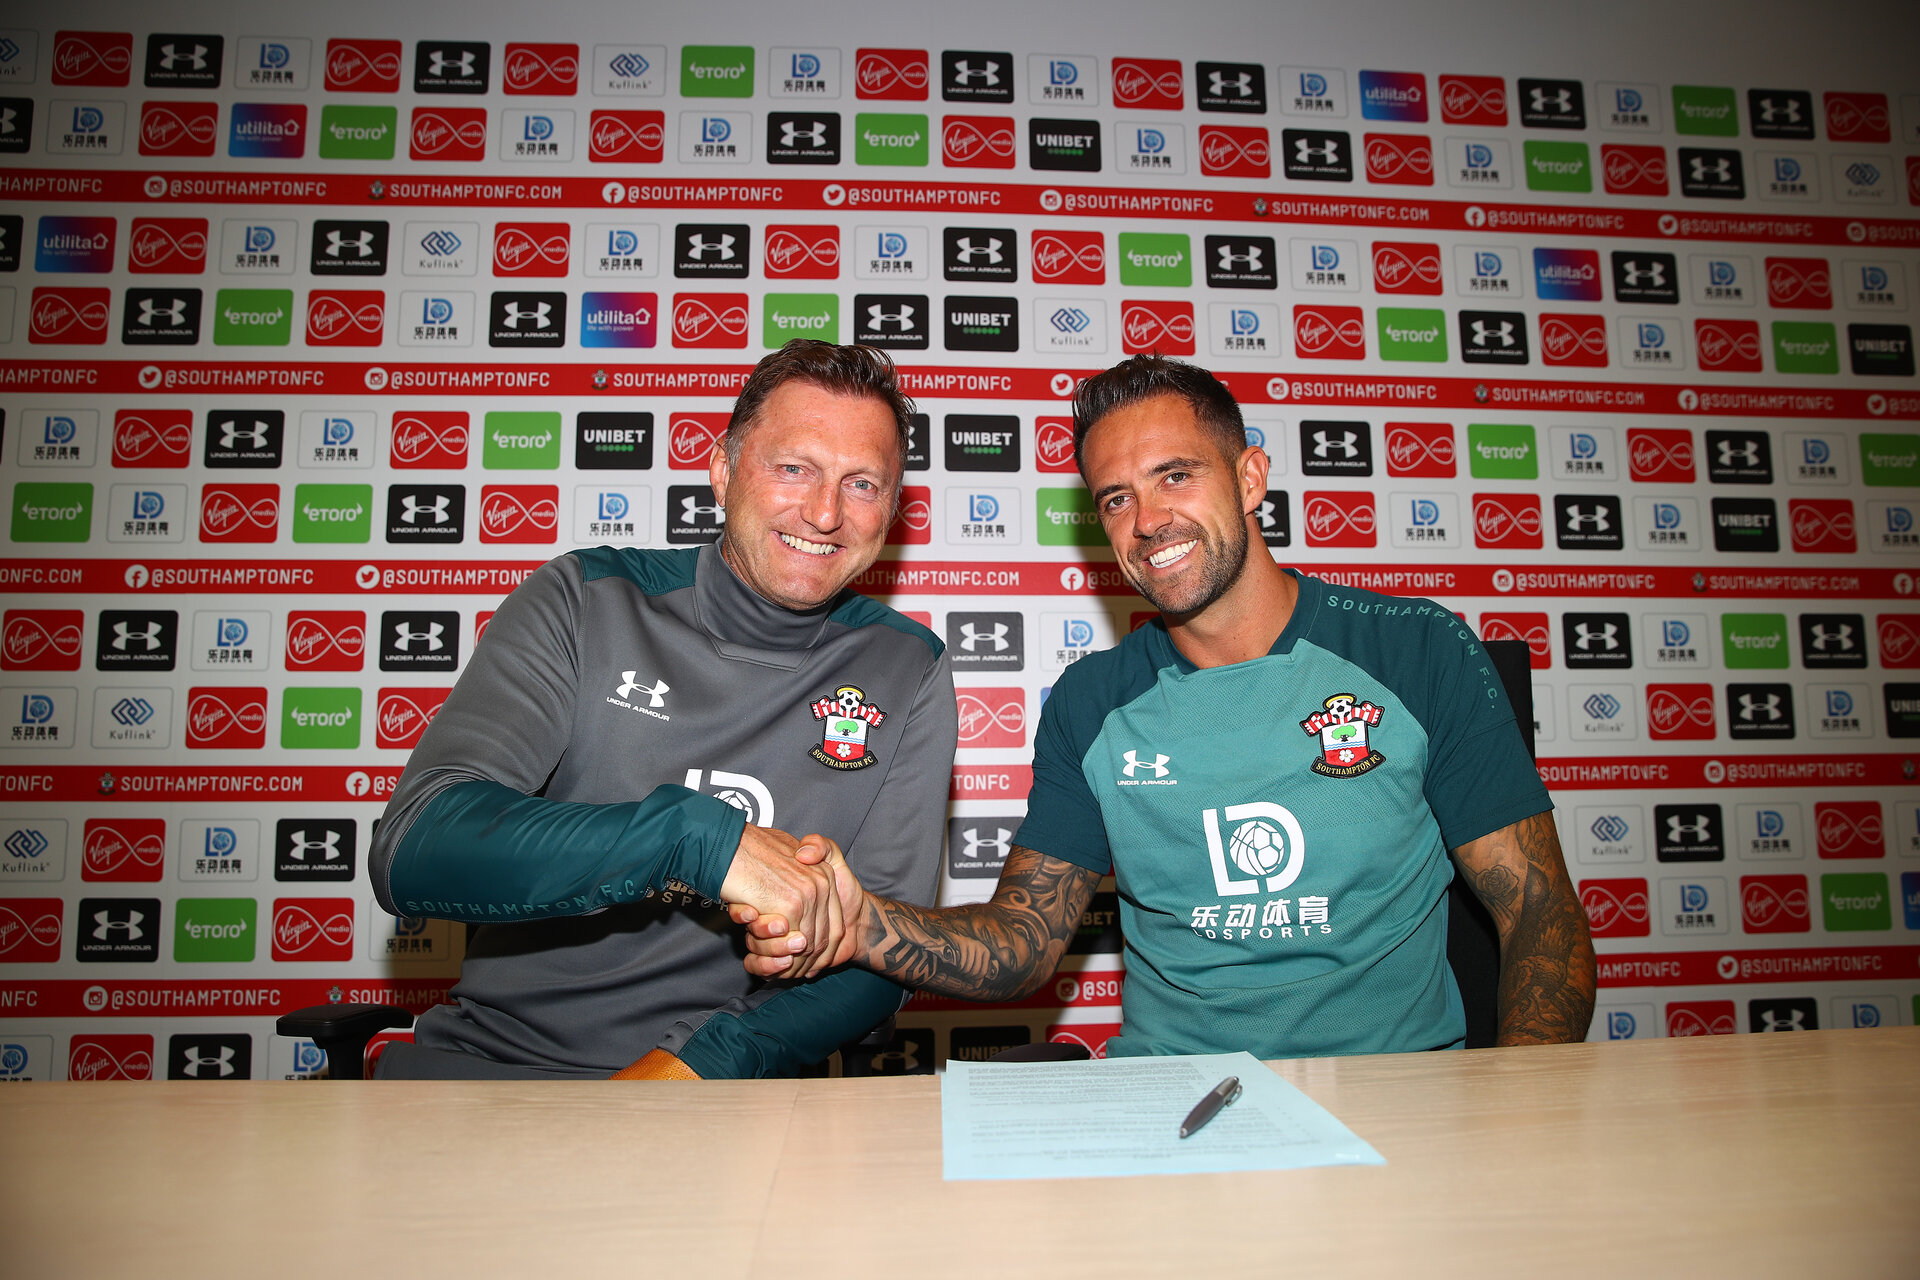 SOUTHAMPTON, ENGLAND - JULY 01: Danny Ings(R) makes his loan deal permanent with Southampton FC, pictured with manager Ralph Hasenhuttl(L) at the Staplewood Campus on July 01, 2019 in Southampton, England. (Photo by Matt Watson/Southampton FC via Getty Images)